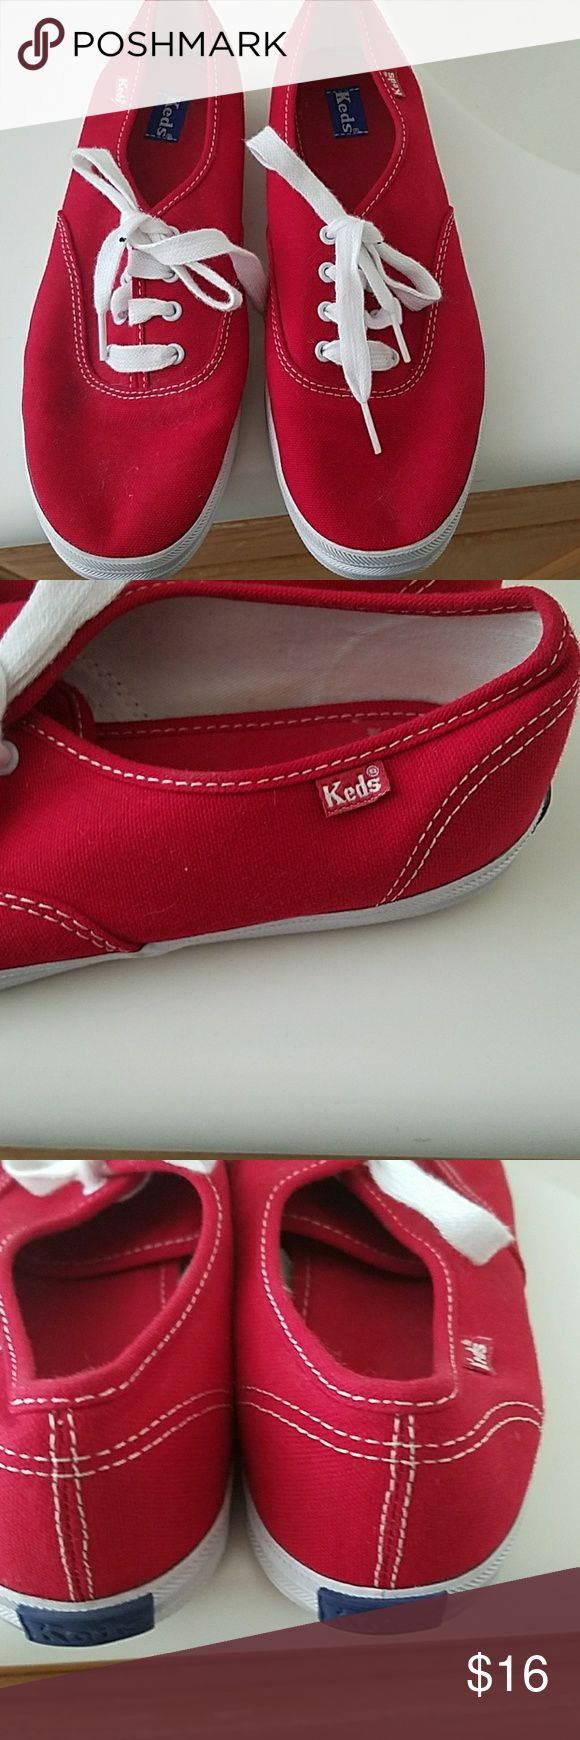 Let's women's tennis shoes Semi new red Keds tennis shoes Keds Shoes Sneakers